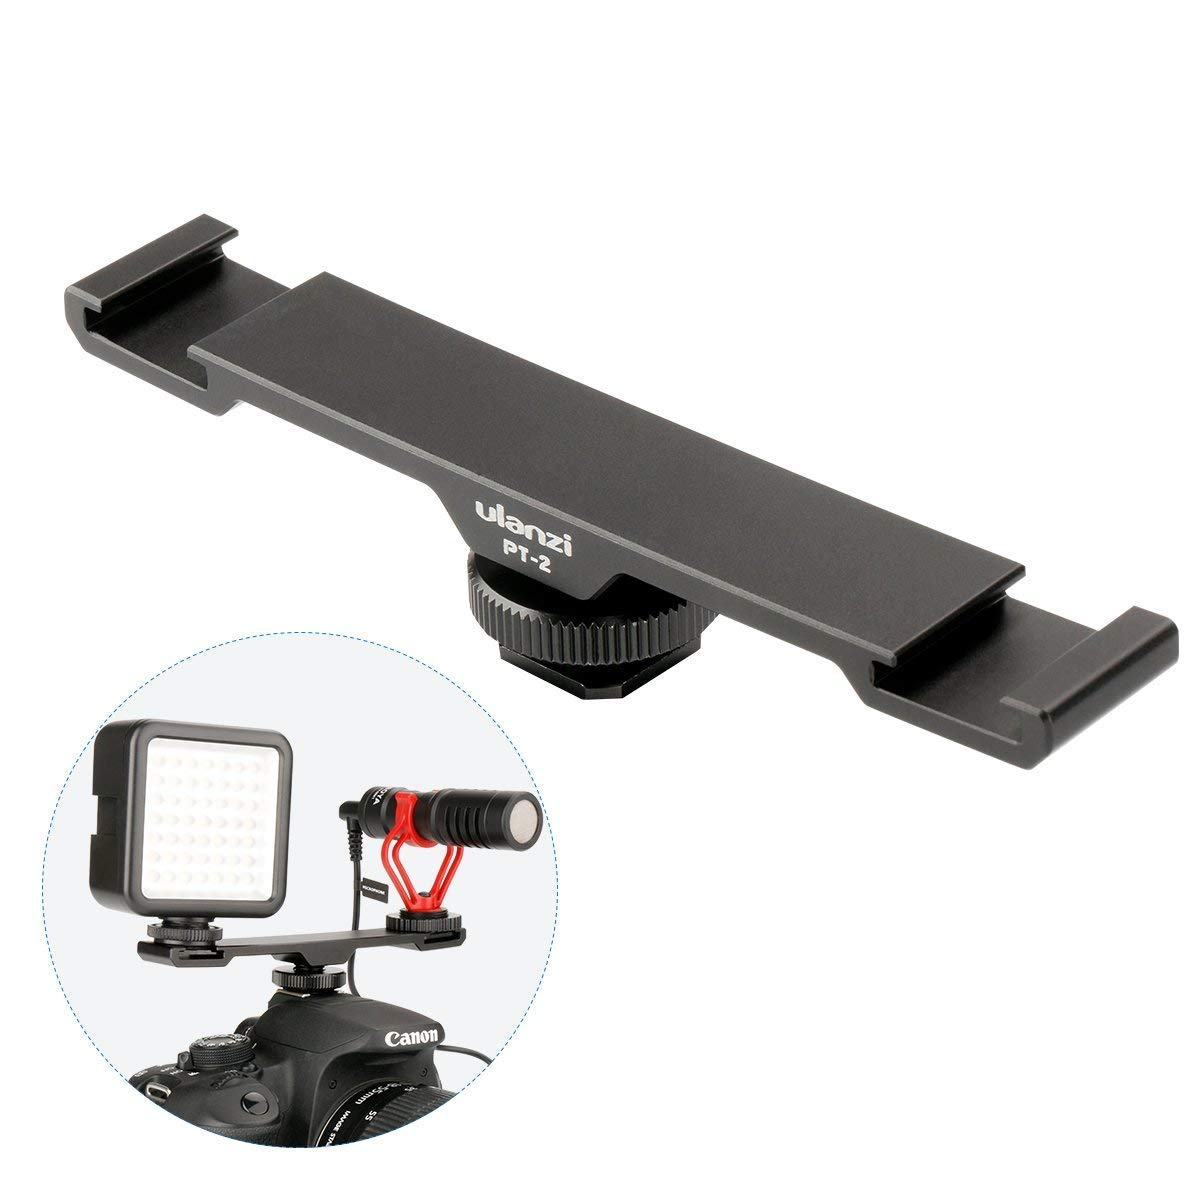 Ulanzi PT-2 Aluminum Alloy Universal Cold Shoe Extension Bracket 2 Hot Shoe Mounts Extension Bar Dual Bracket with 1/4'' Thread Holes for iPhone Nikon Canon DSLR Camera Flash LED Video Light Microphone by ULANZI